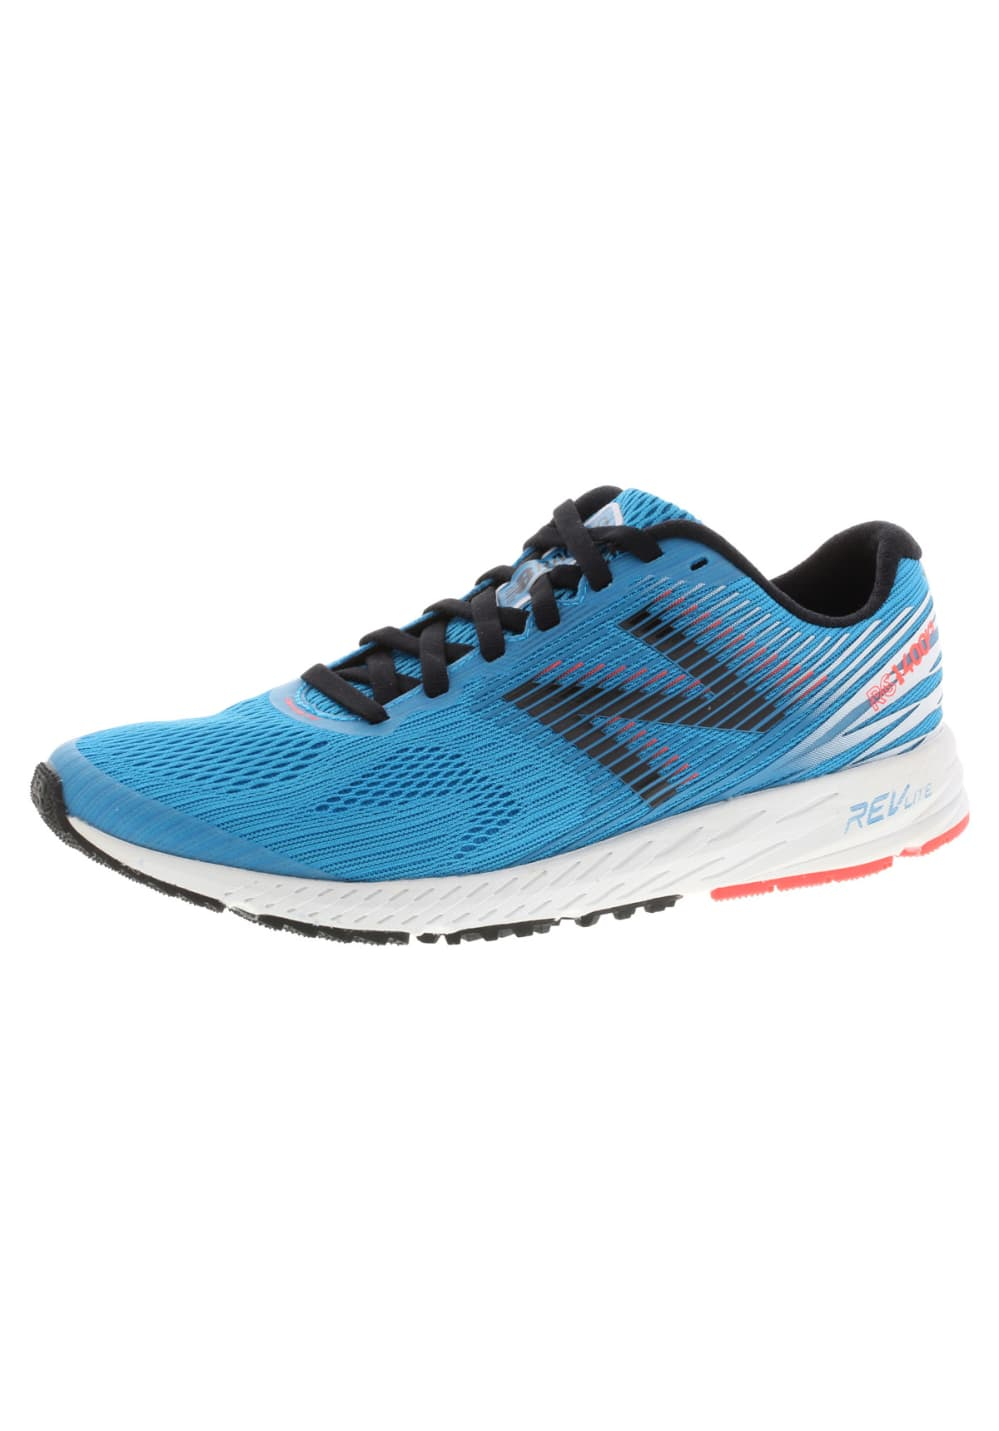 check out 0a636 1e3c9 New Balance 1400 V5 - Running shoes for Women - Blue